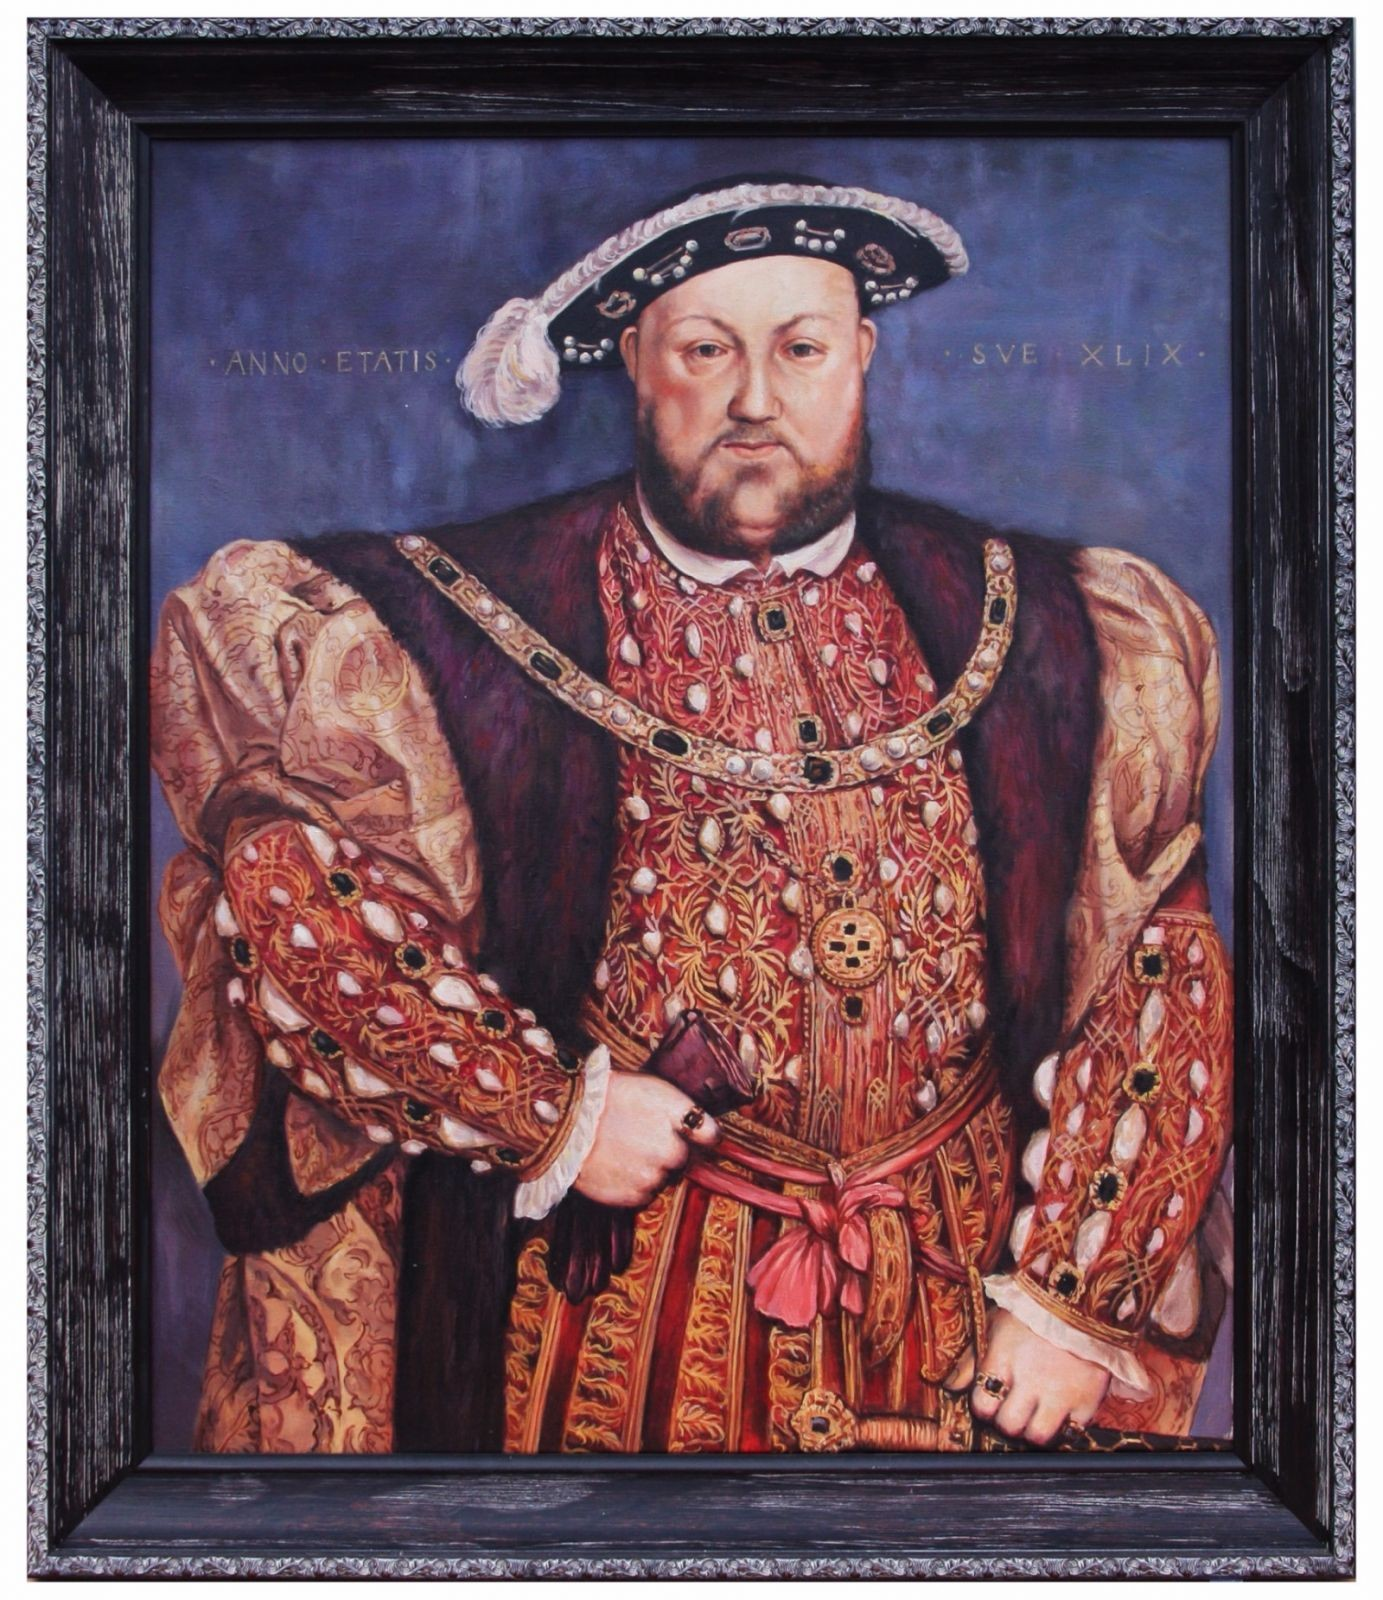 Oil Painting after 'Henry VIII Royal Portrait' by Hans Holbein the Younger